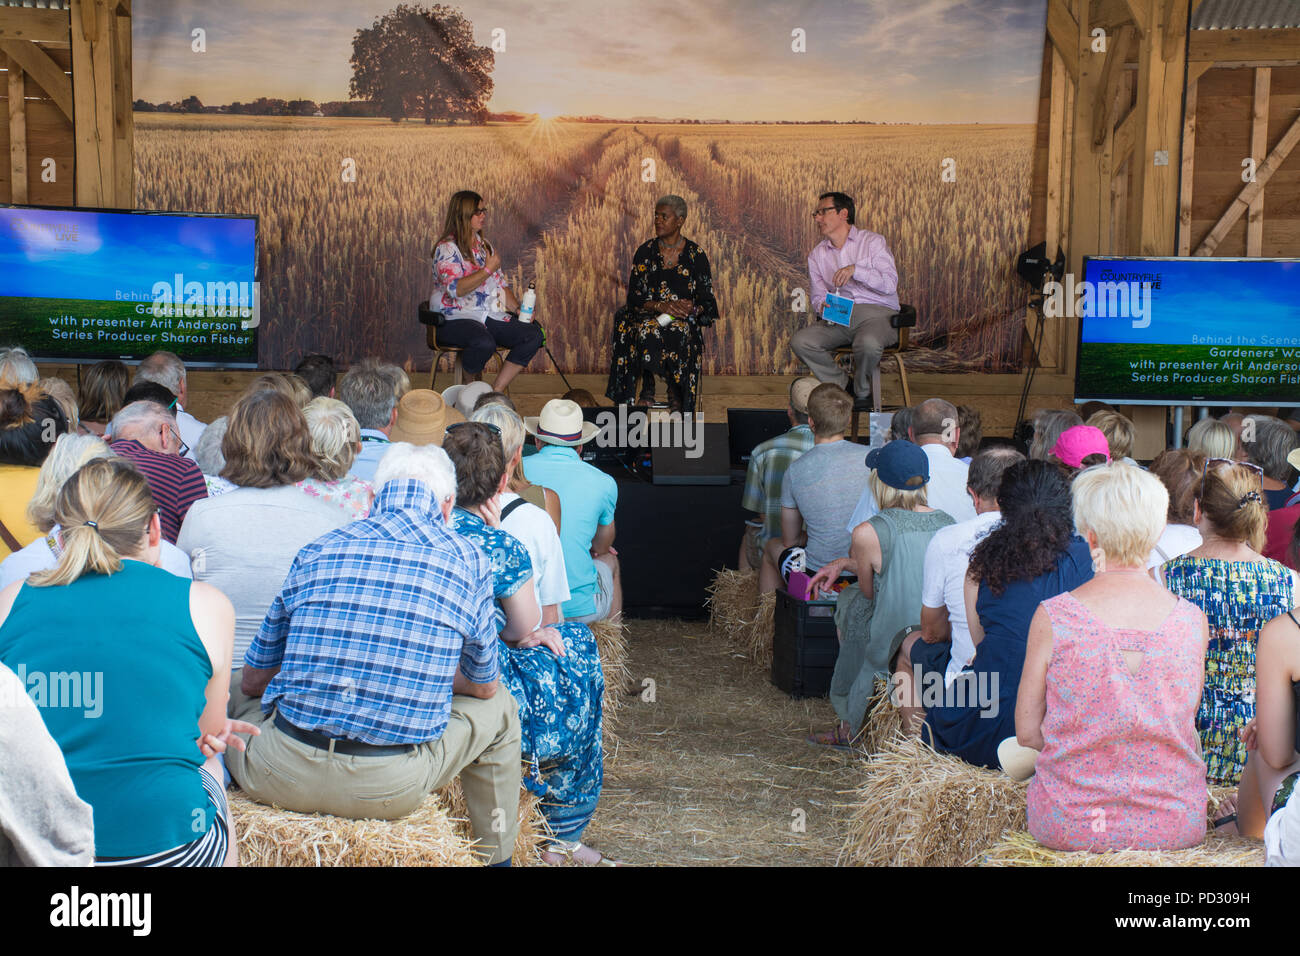 Audience watching on stage discussion with Gardeners World presenter Arit Anderson at Countryfile Live 2018 show at Blenheim Palace, Oxfordshire, UK - Stock Image